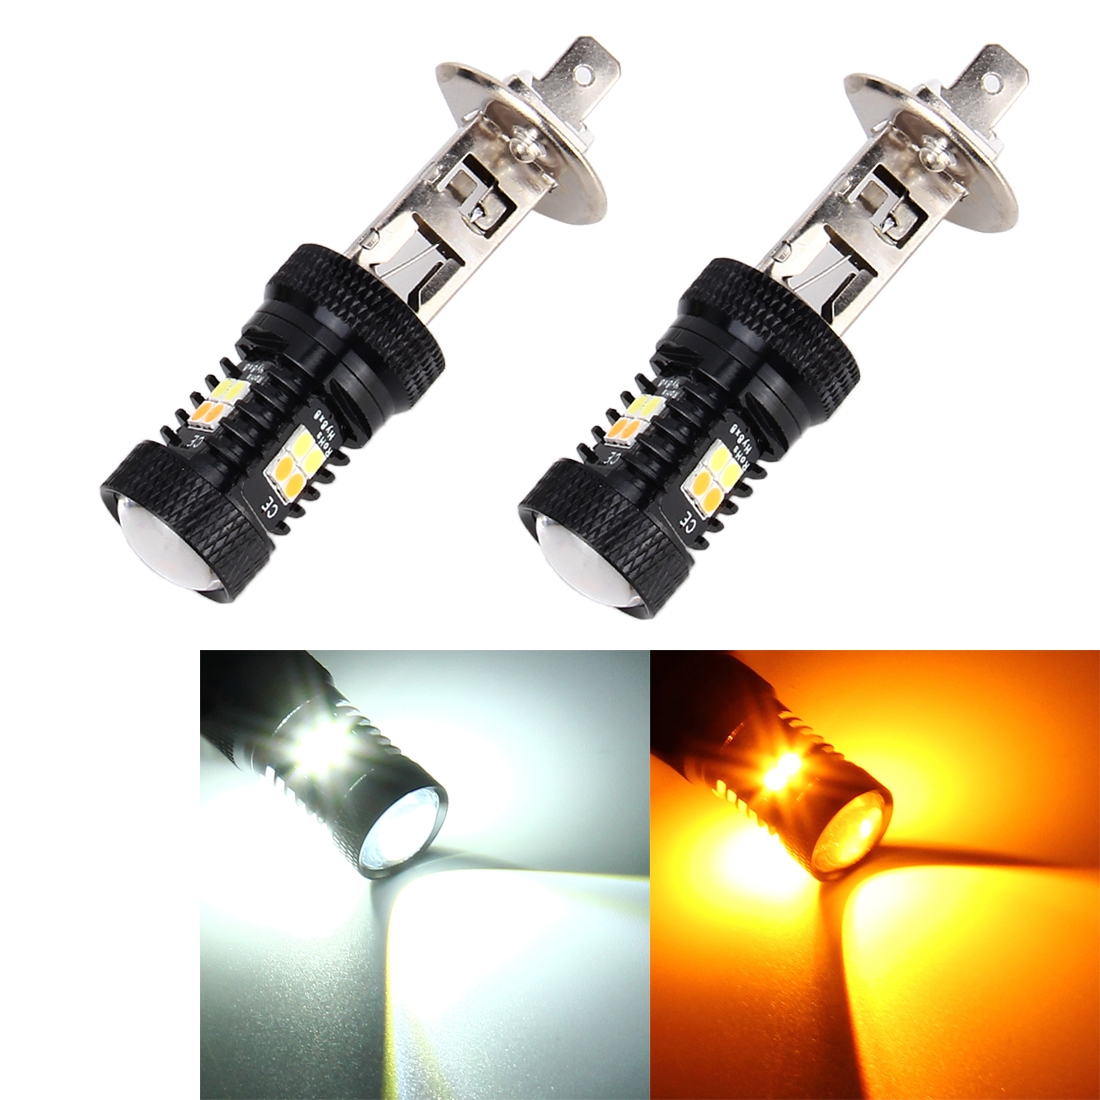 12v 5w 2 Pcs Super Bright H1 Dc 12v 5w 350lm Auto Car Fog Light With 16 Smd 3030 Led Bulbs Lamp White Yellow Light